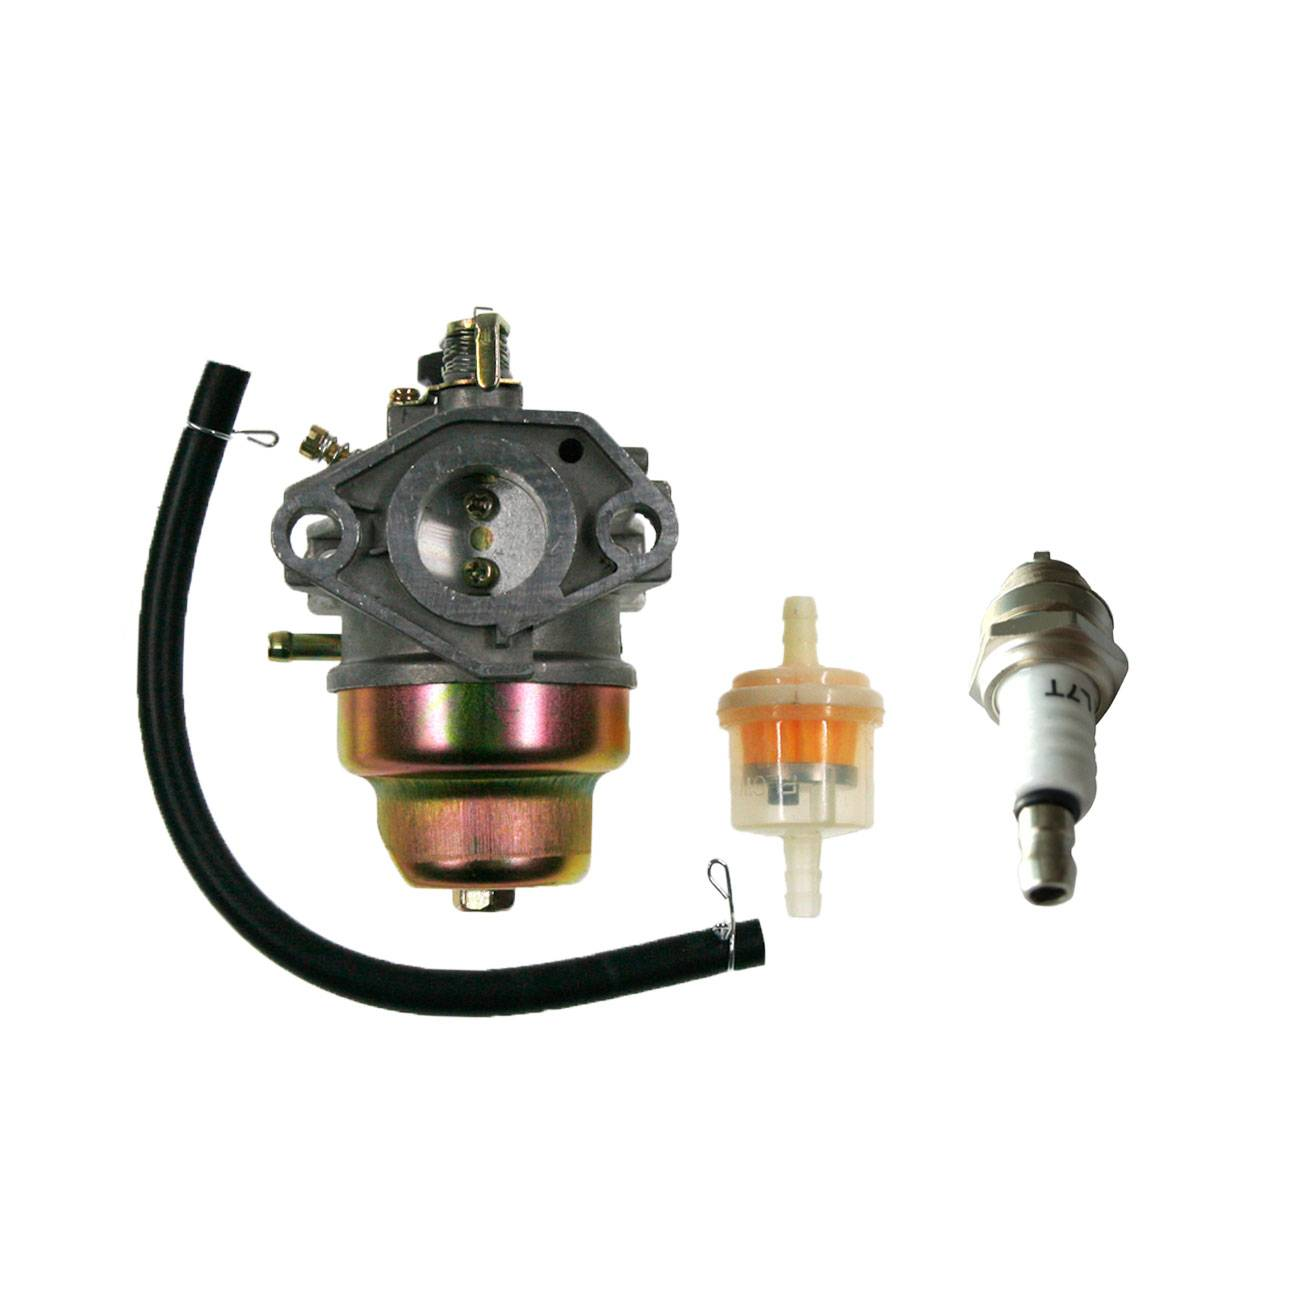 carburetor Spark Plugs Fit <font><b>Honda</b></font> <font><b>G300</b></font> 7hp Engines Part 16100-889-663 NEW image